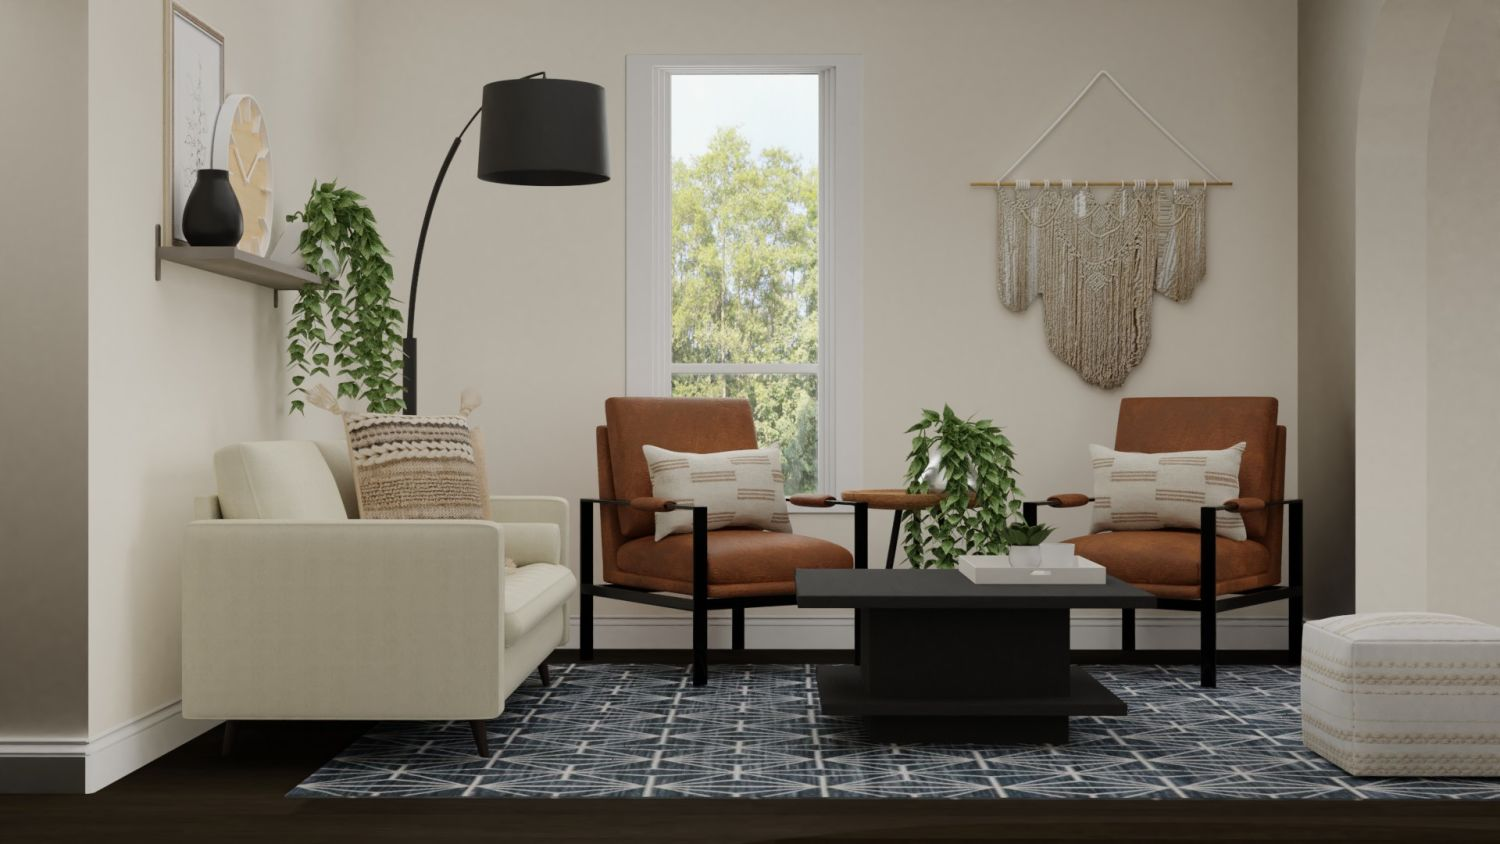 Leather Accent Chairs: Urban Boho Living Room Design By Spacejoy